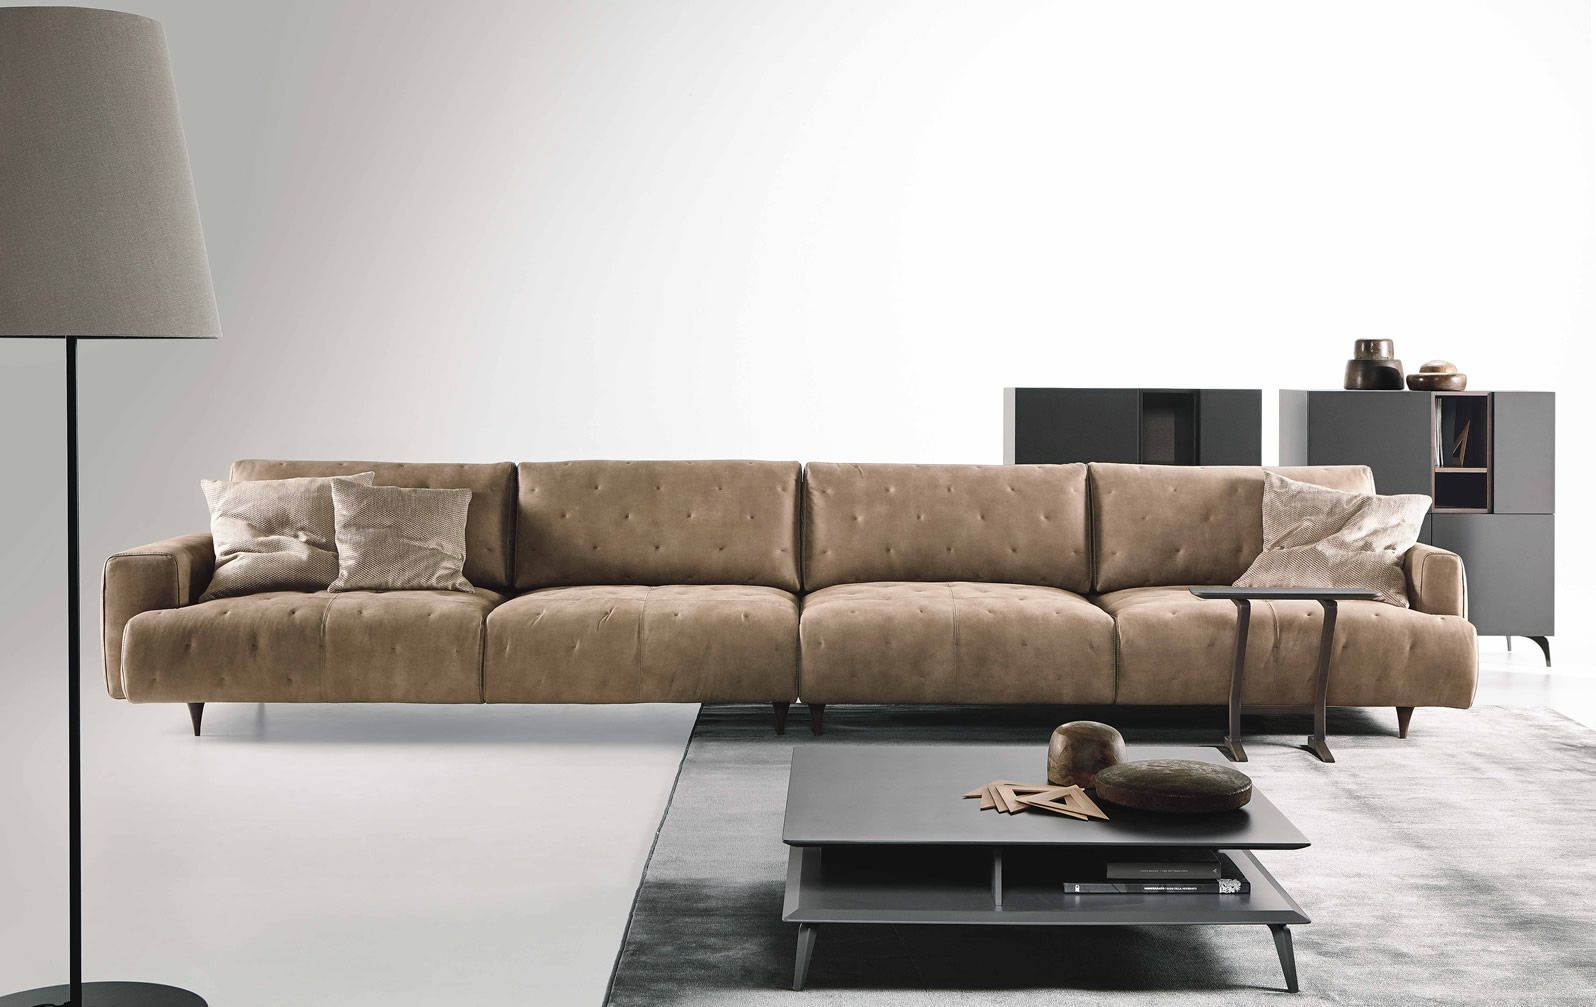 Ecléctico from the new Ditre Italia collection in leather